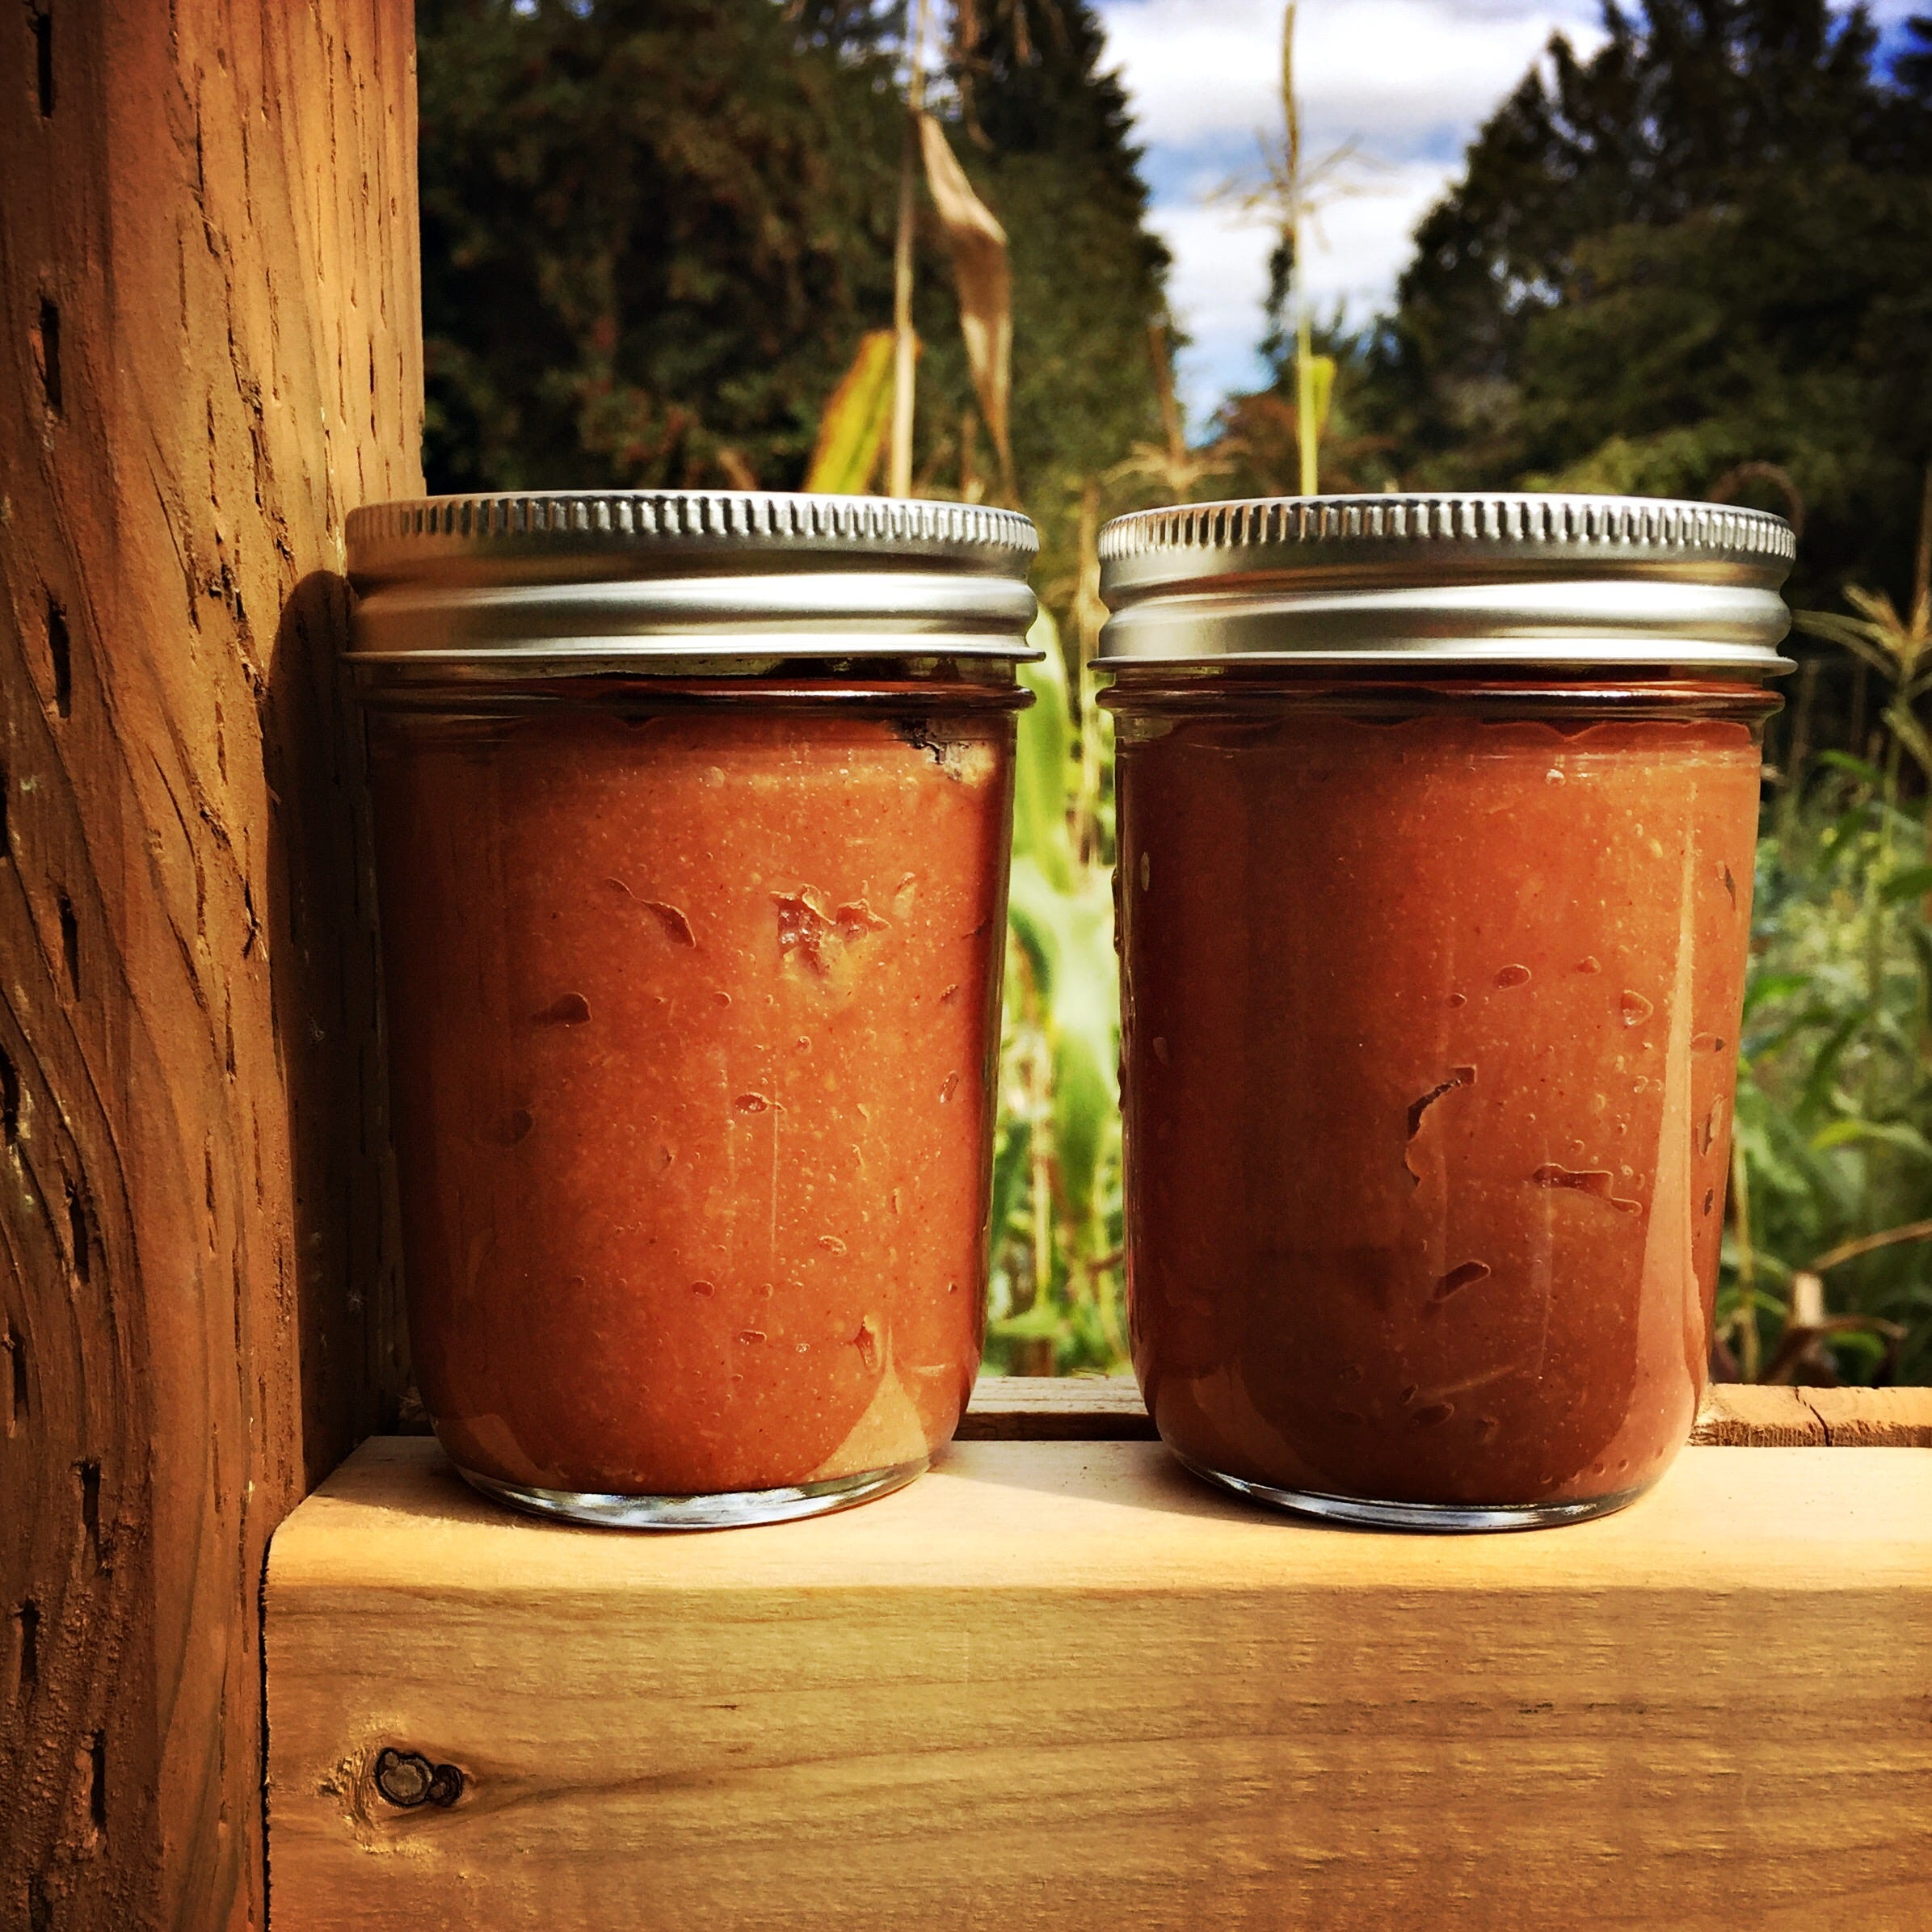 An apple butter that won't wreck your kitchen